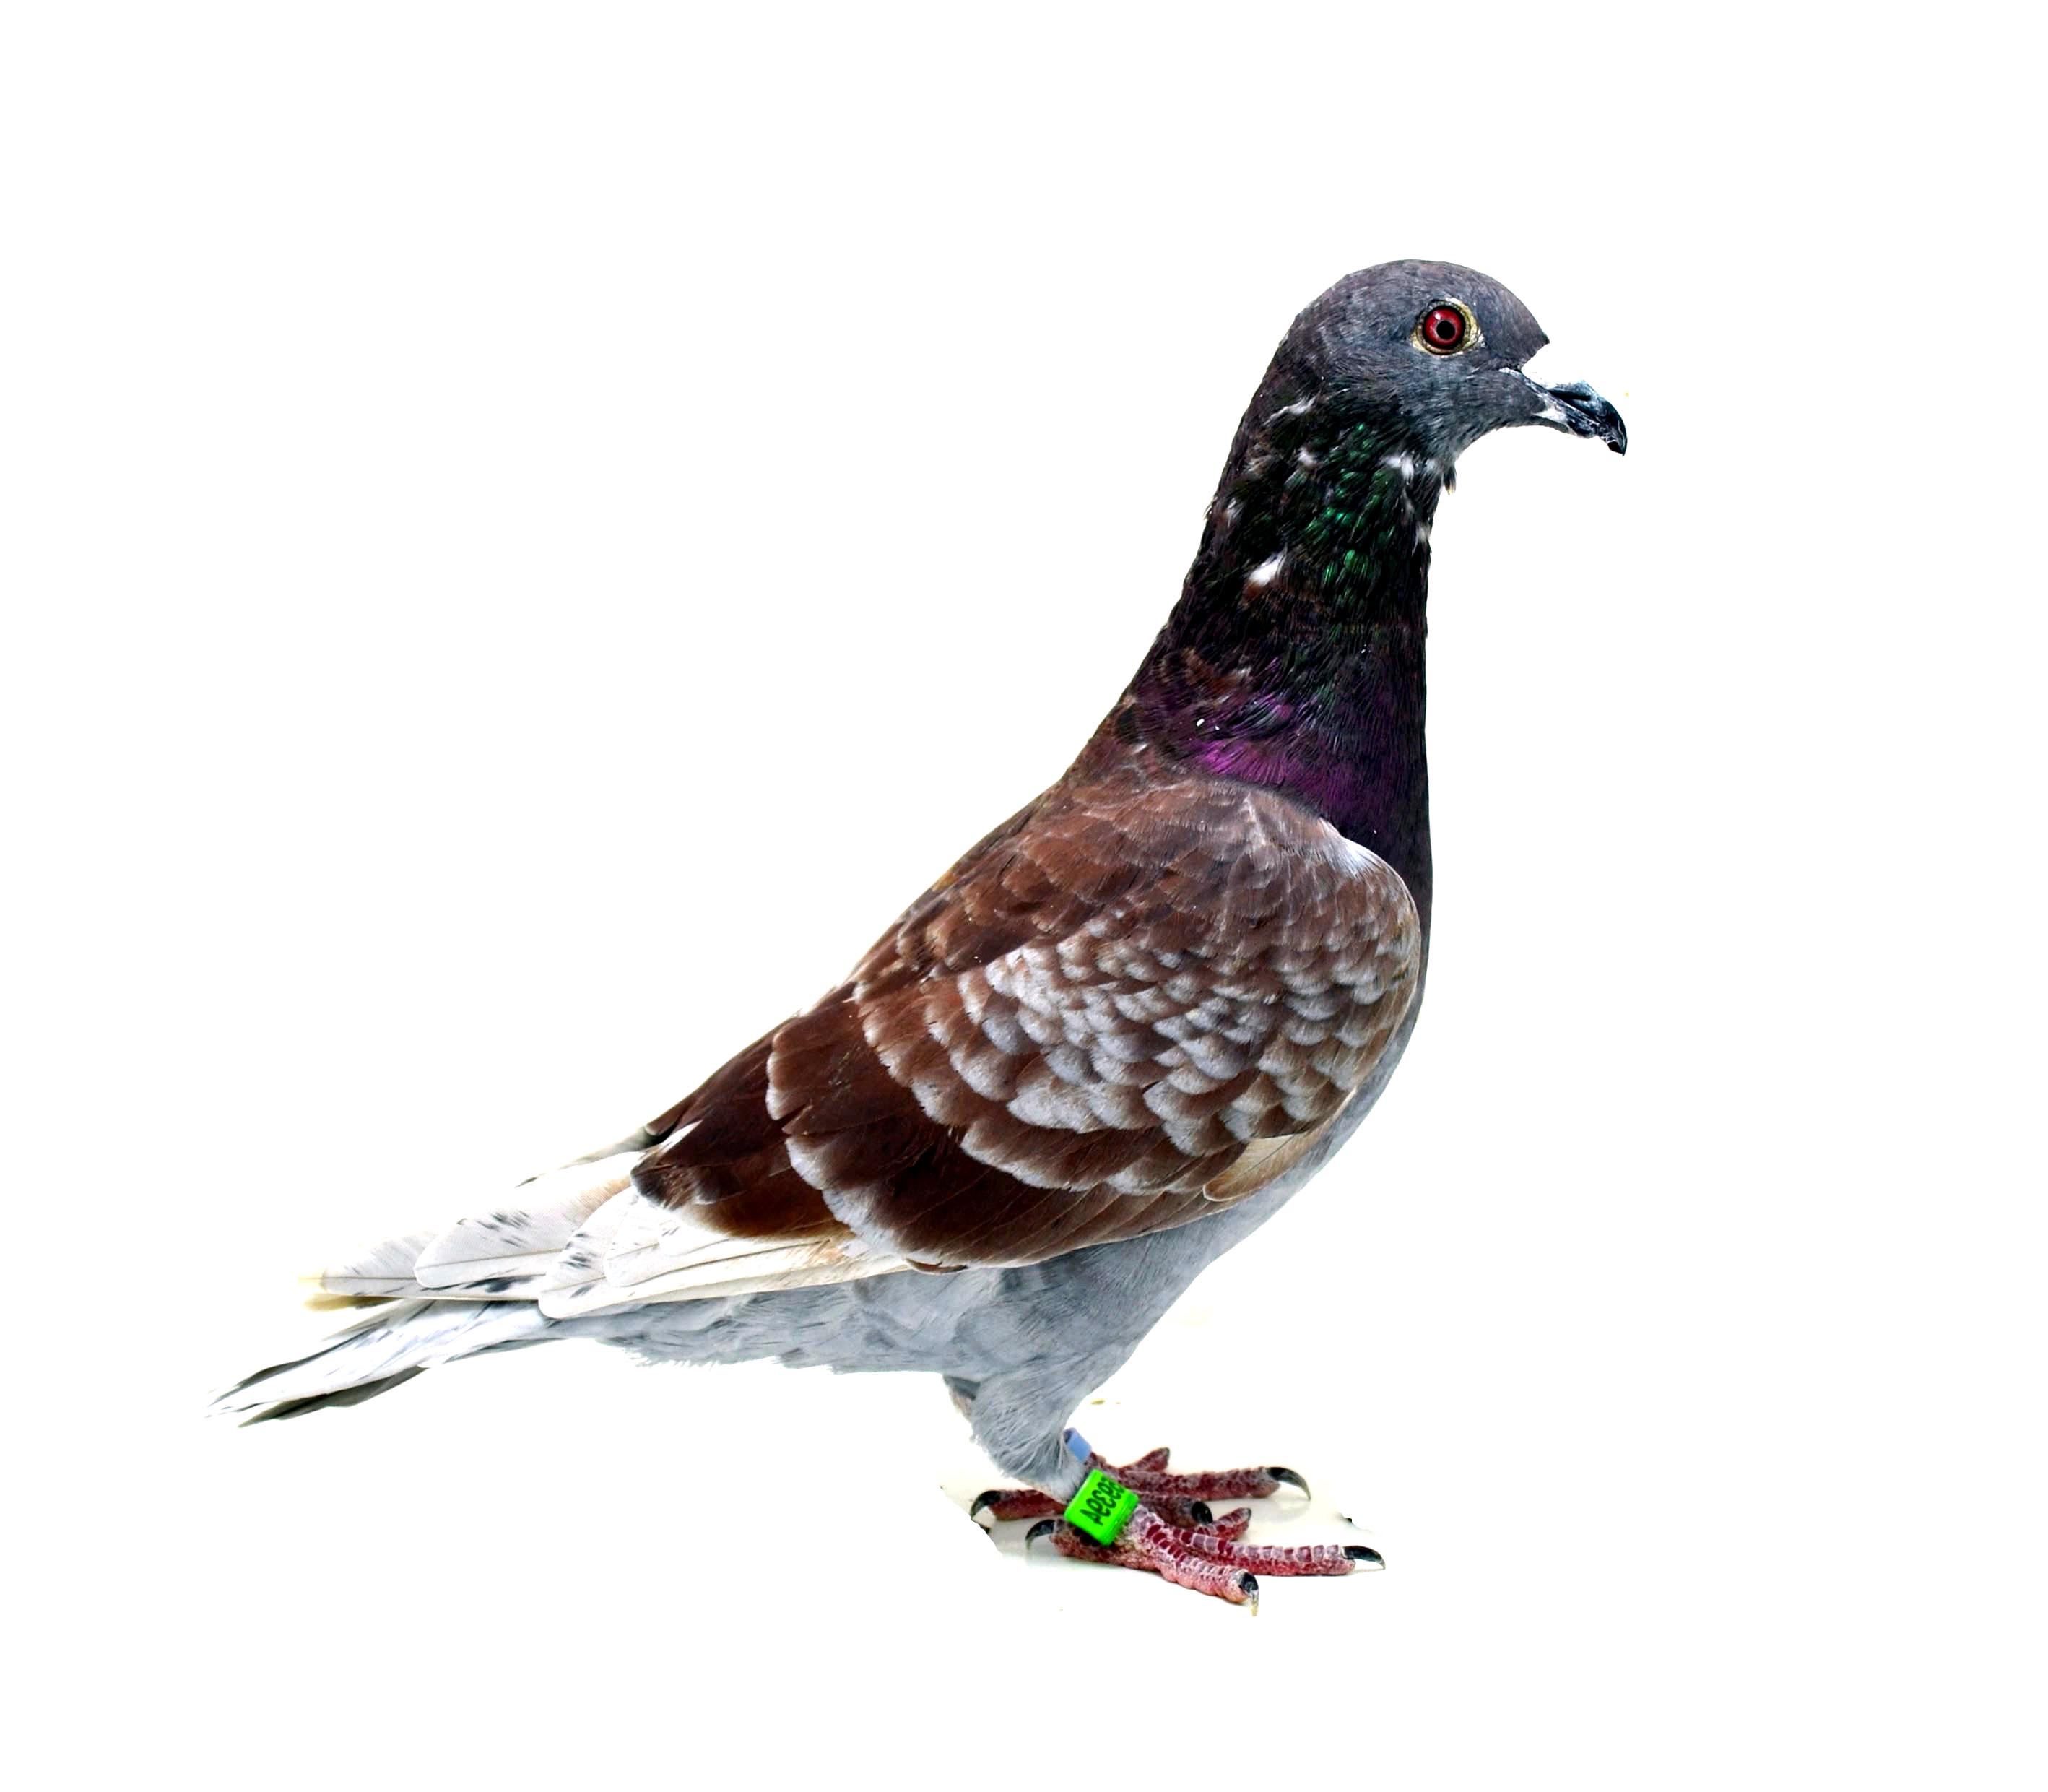 84 FINAL RACE SPORTING PIGEONS TEAM	Team A	Portugal	PT-8459394-2018